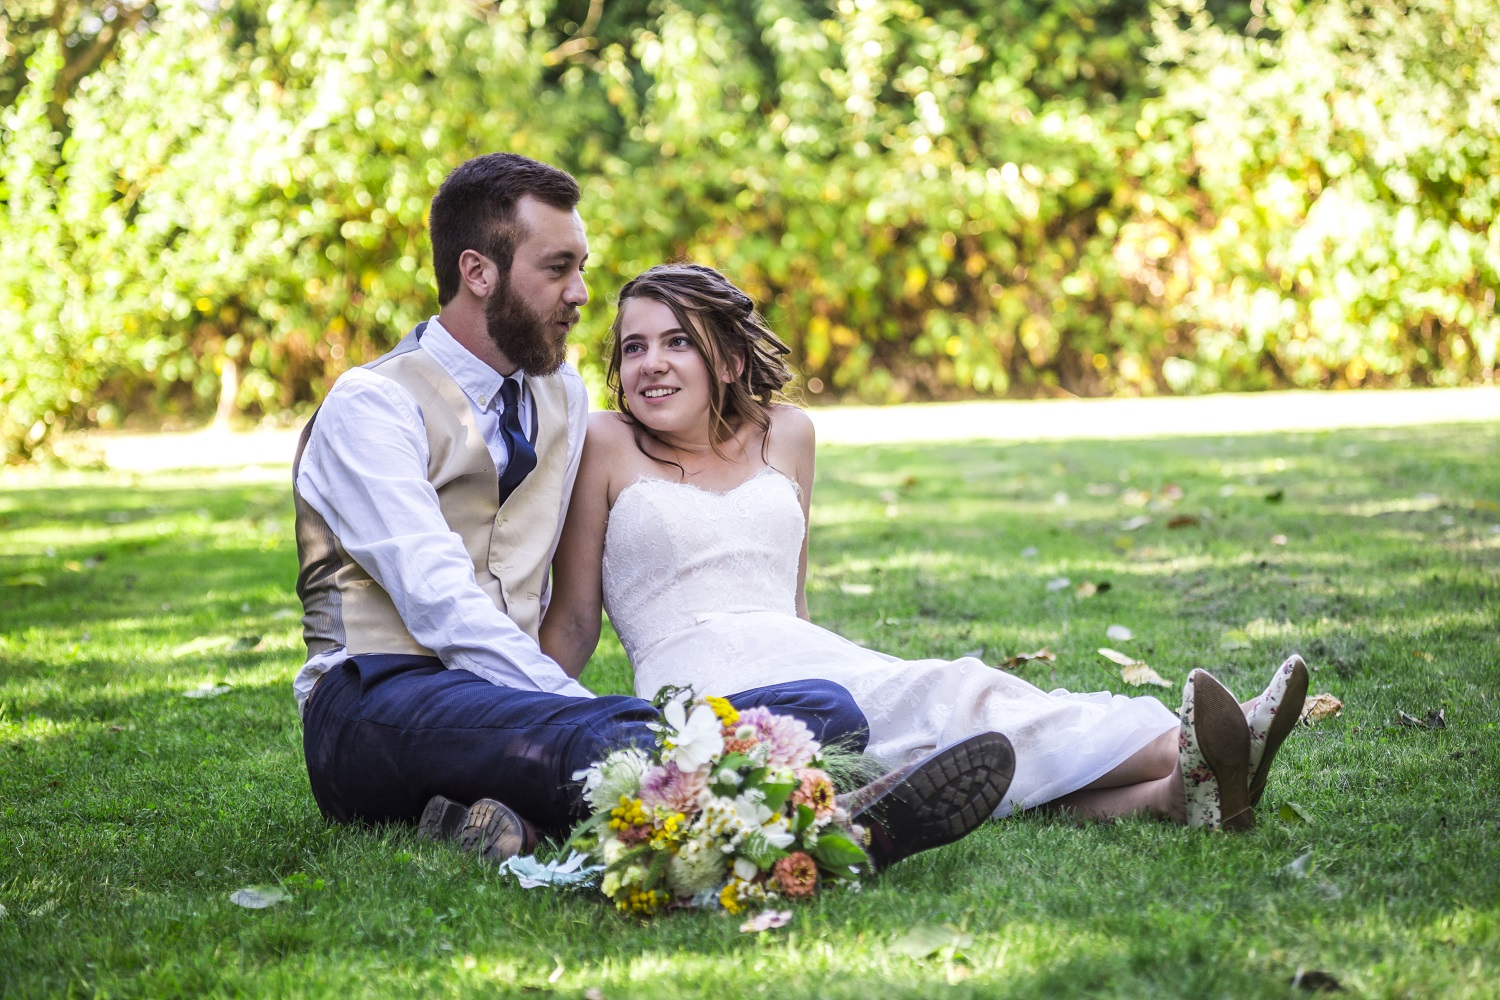 We had an awesome experience with Pink Daisy booking our photographer. The team is very accommodating and personable, and they seem to genuinely care about your wedding day. We love our photos and the whole experience!   -Hailey and Aaron